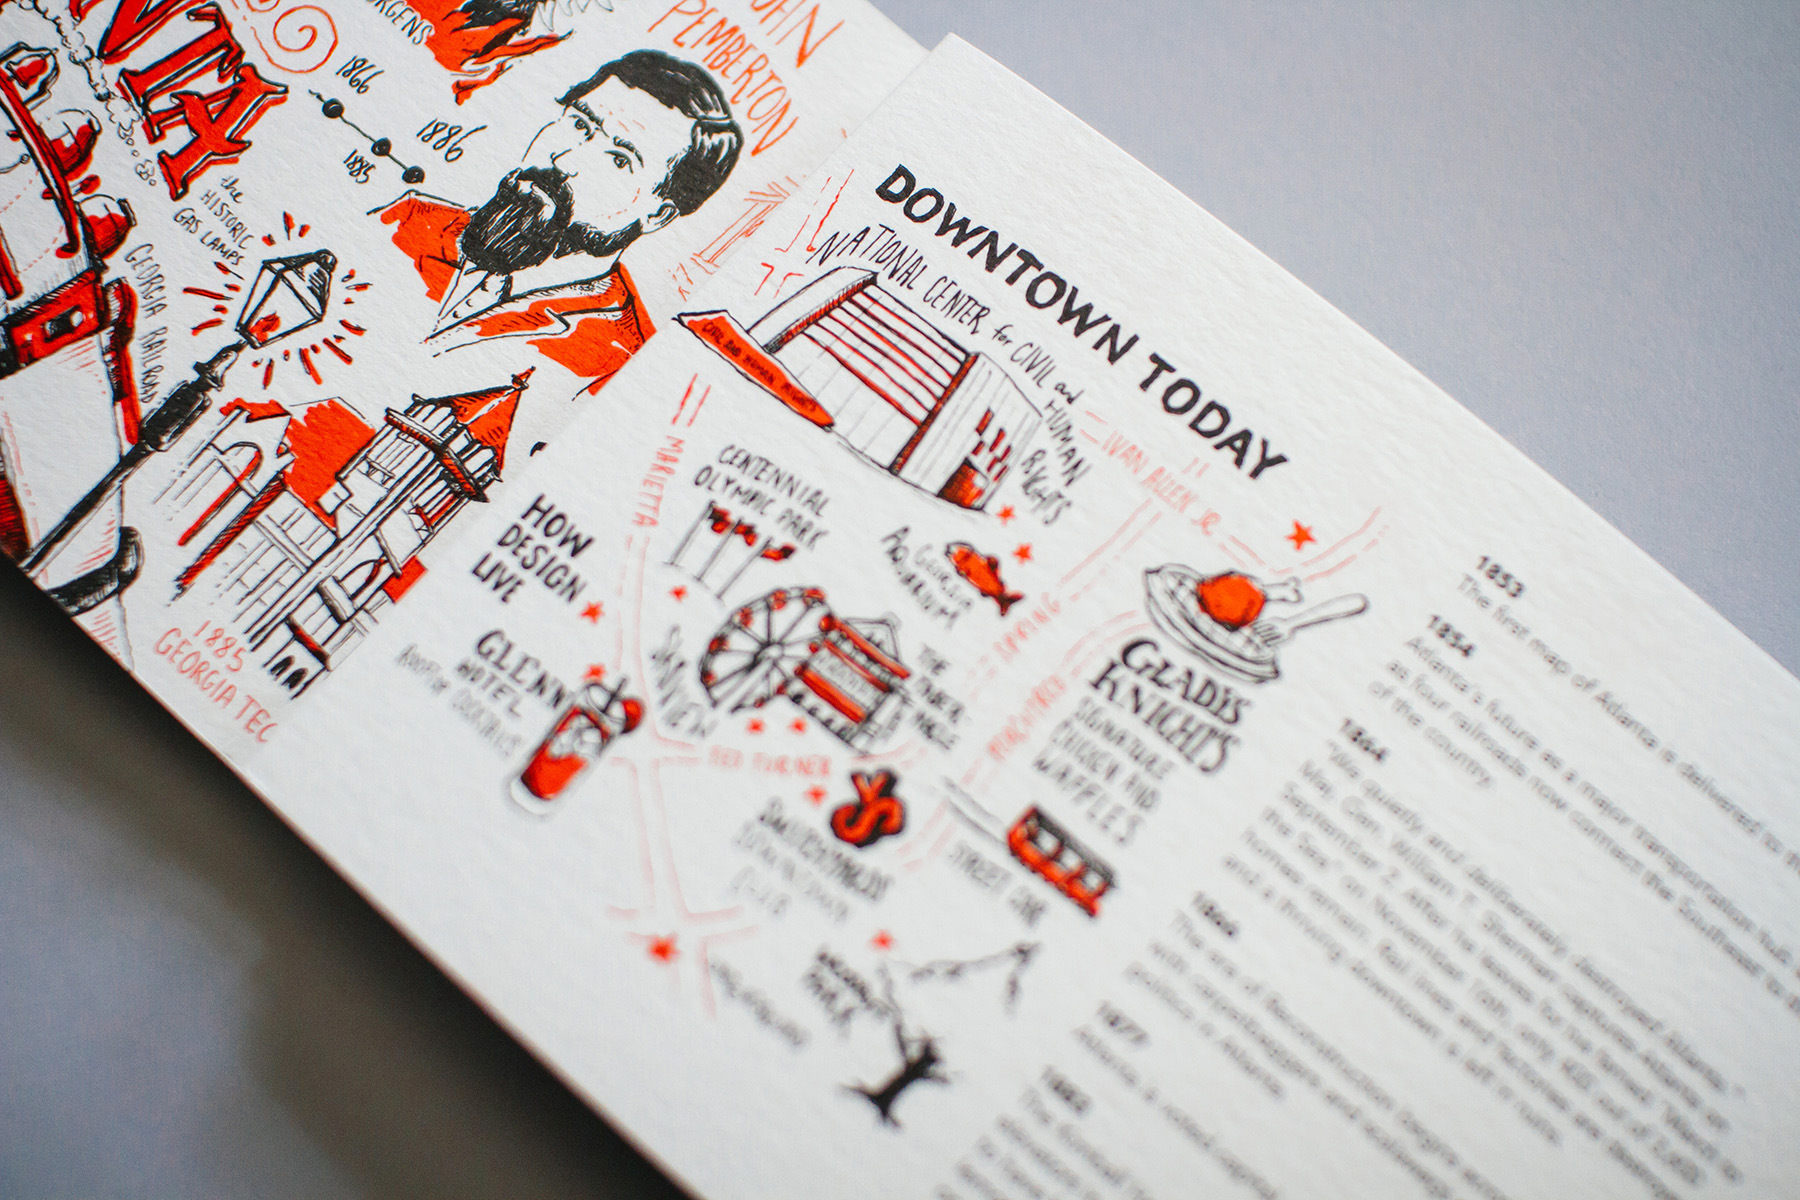 Illustrated and Hand Lettering for Downtown Today Atlanta neighborhood map. Features Center for Civil and Human Rights, Gladis Knight's chicken and waffles, Switchyards, the tabernacle and the street car.